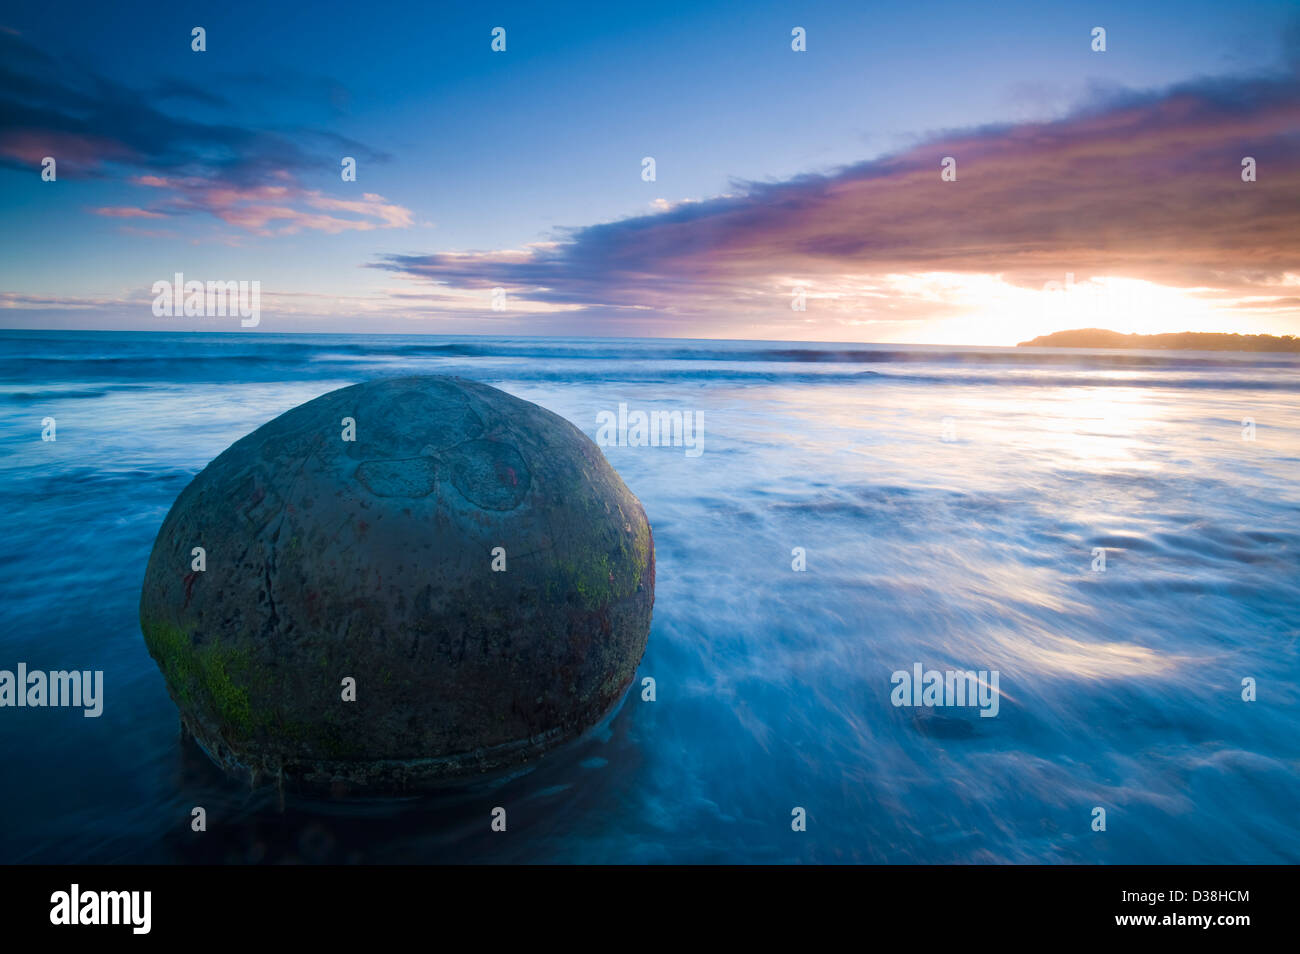 Waves washing over rock on beach - Stock Image